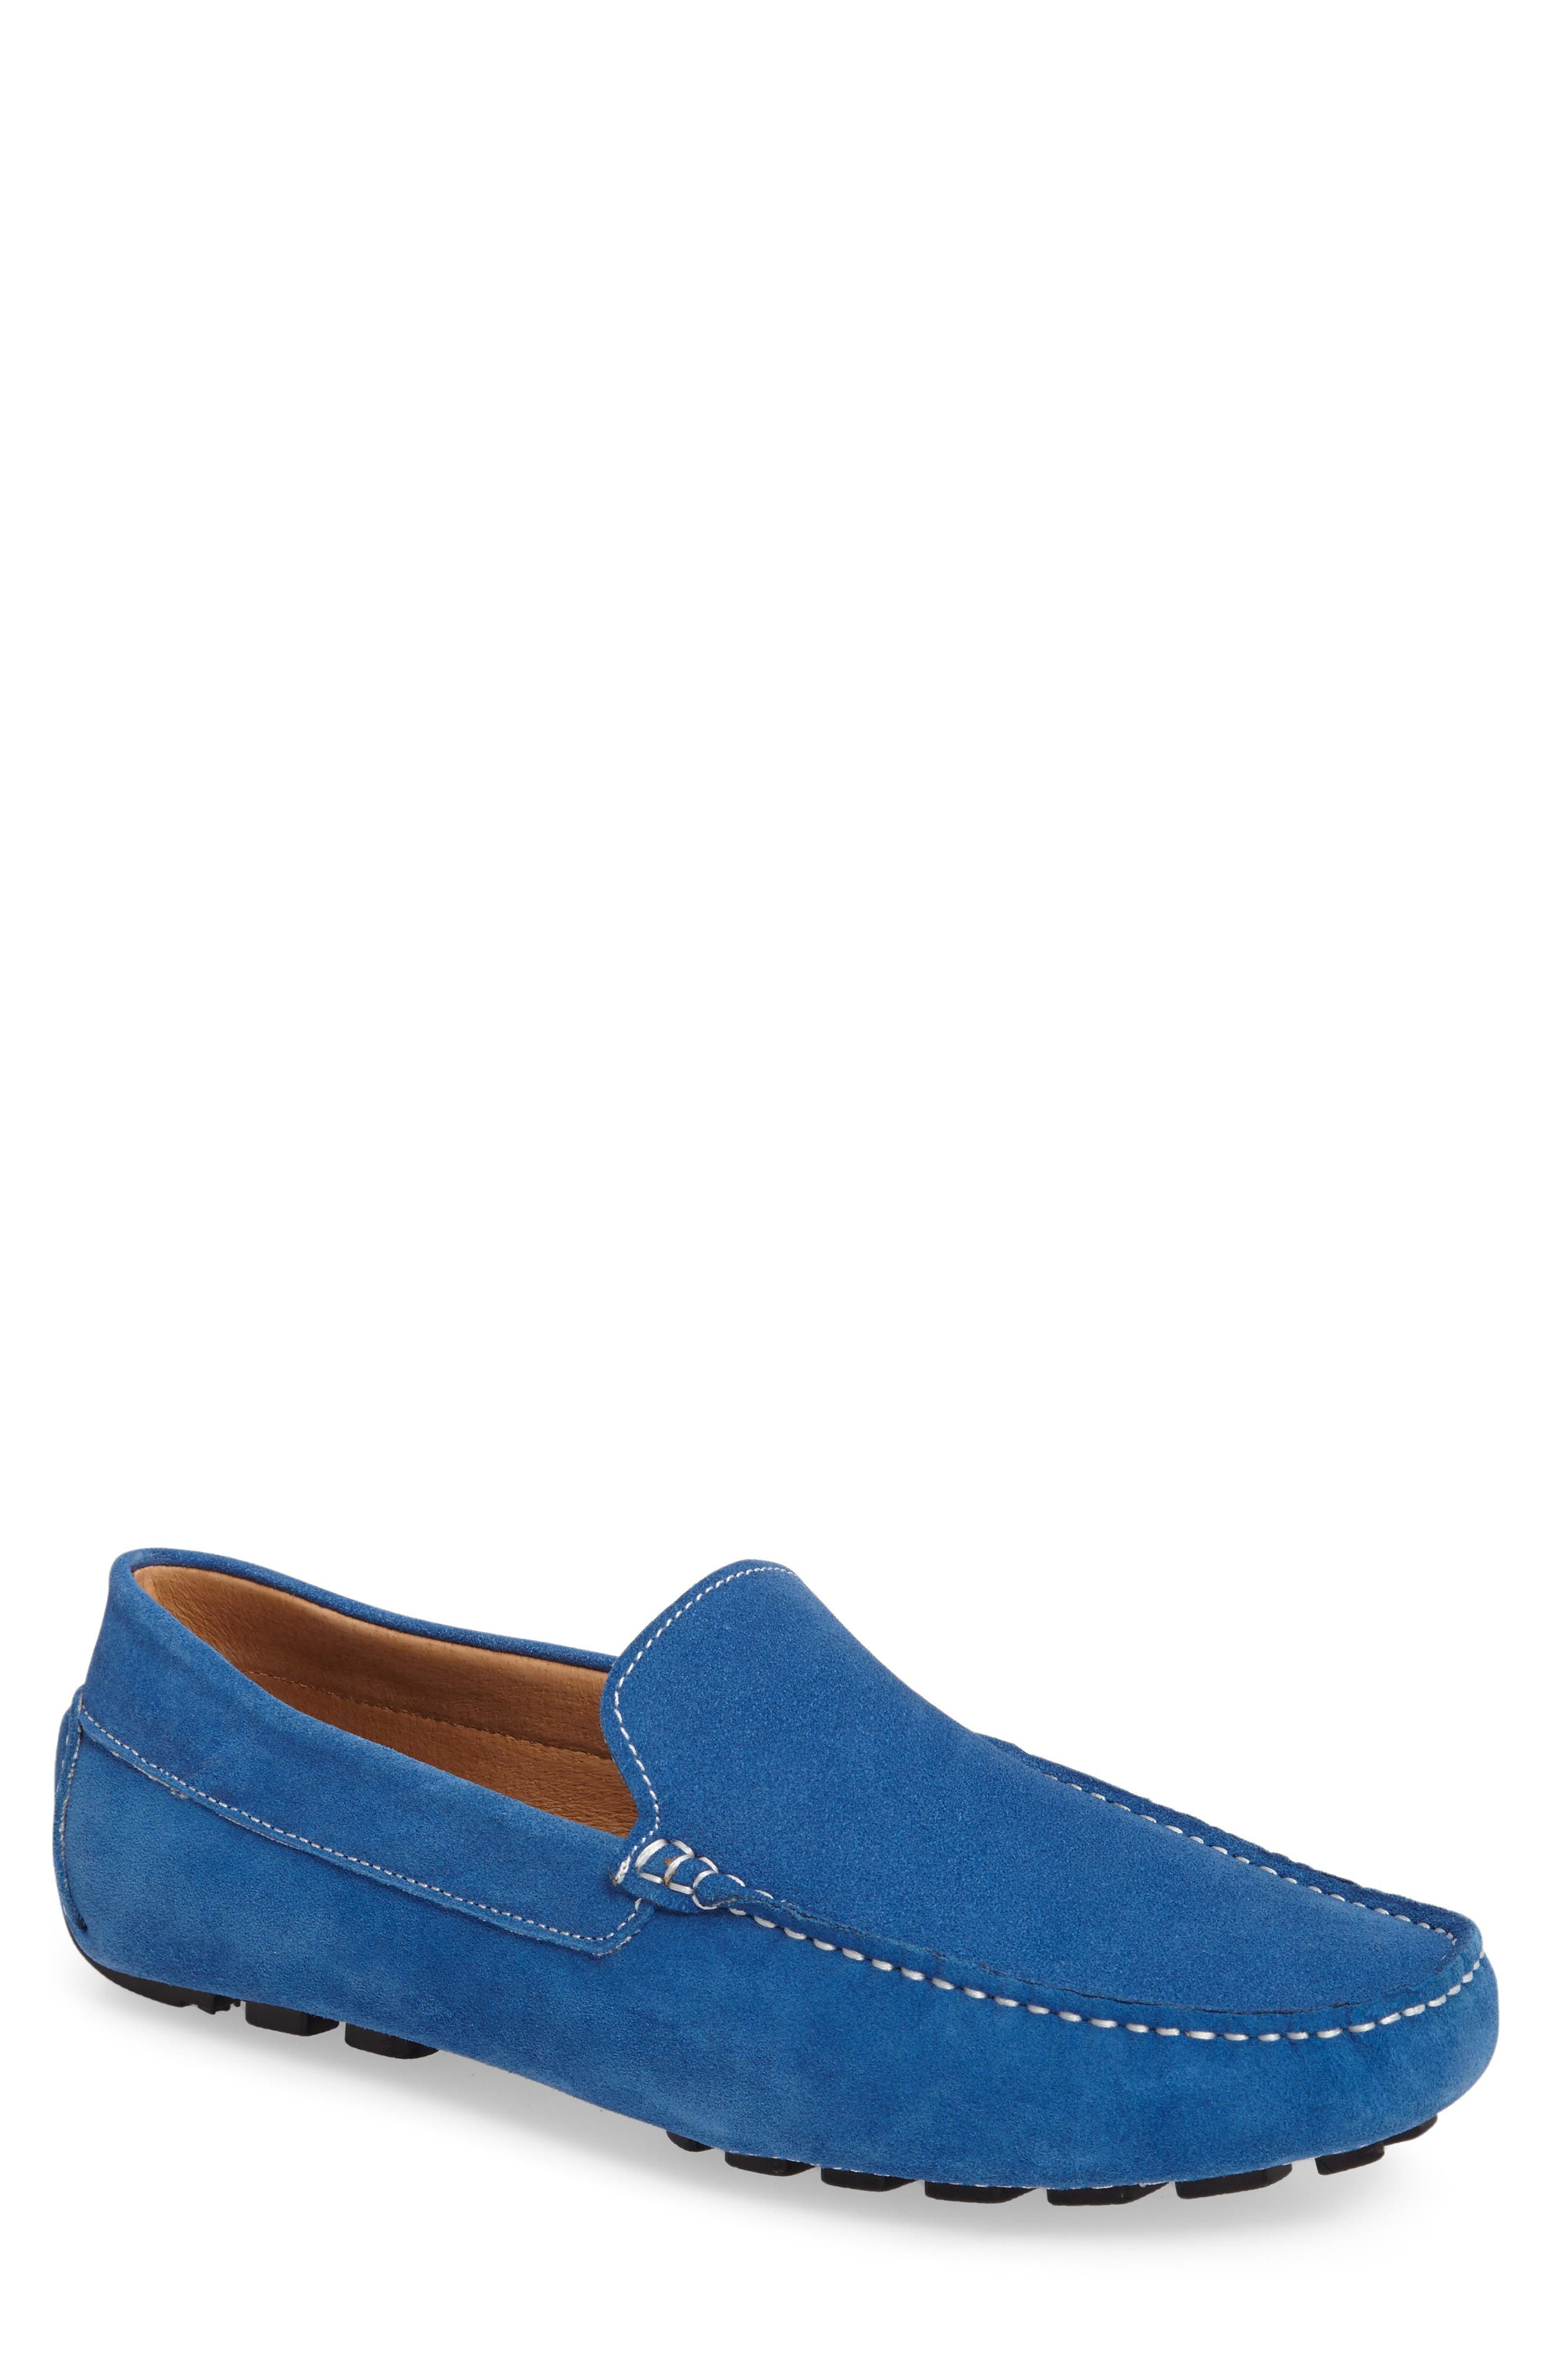 'Picasso' Slip-On Driver,                             Main thumbnail 1, color,                             Royal Suede